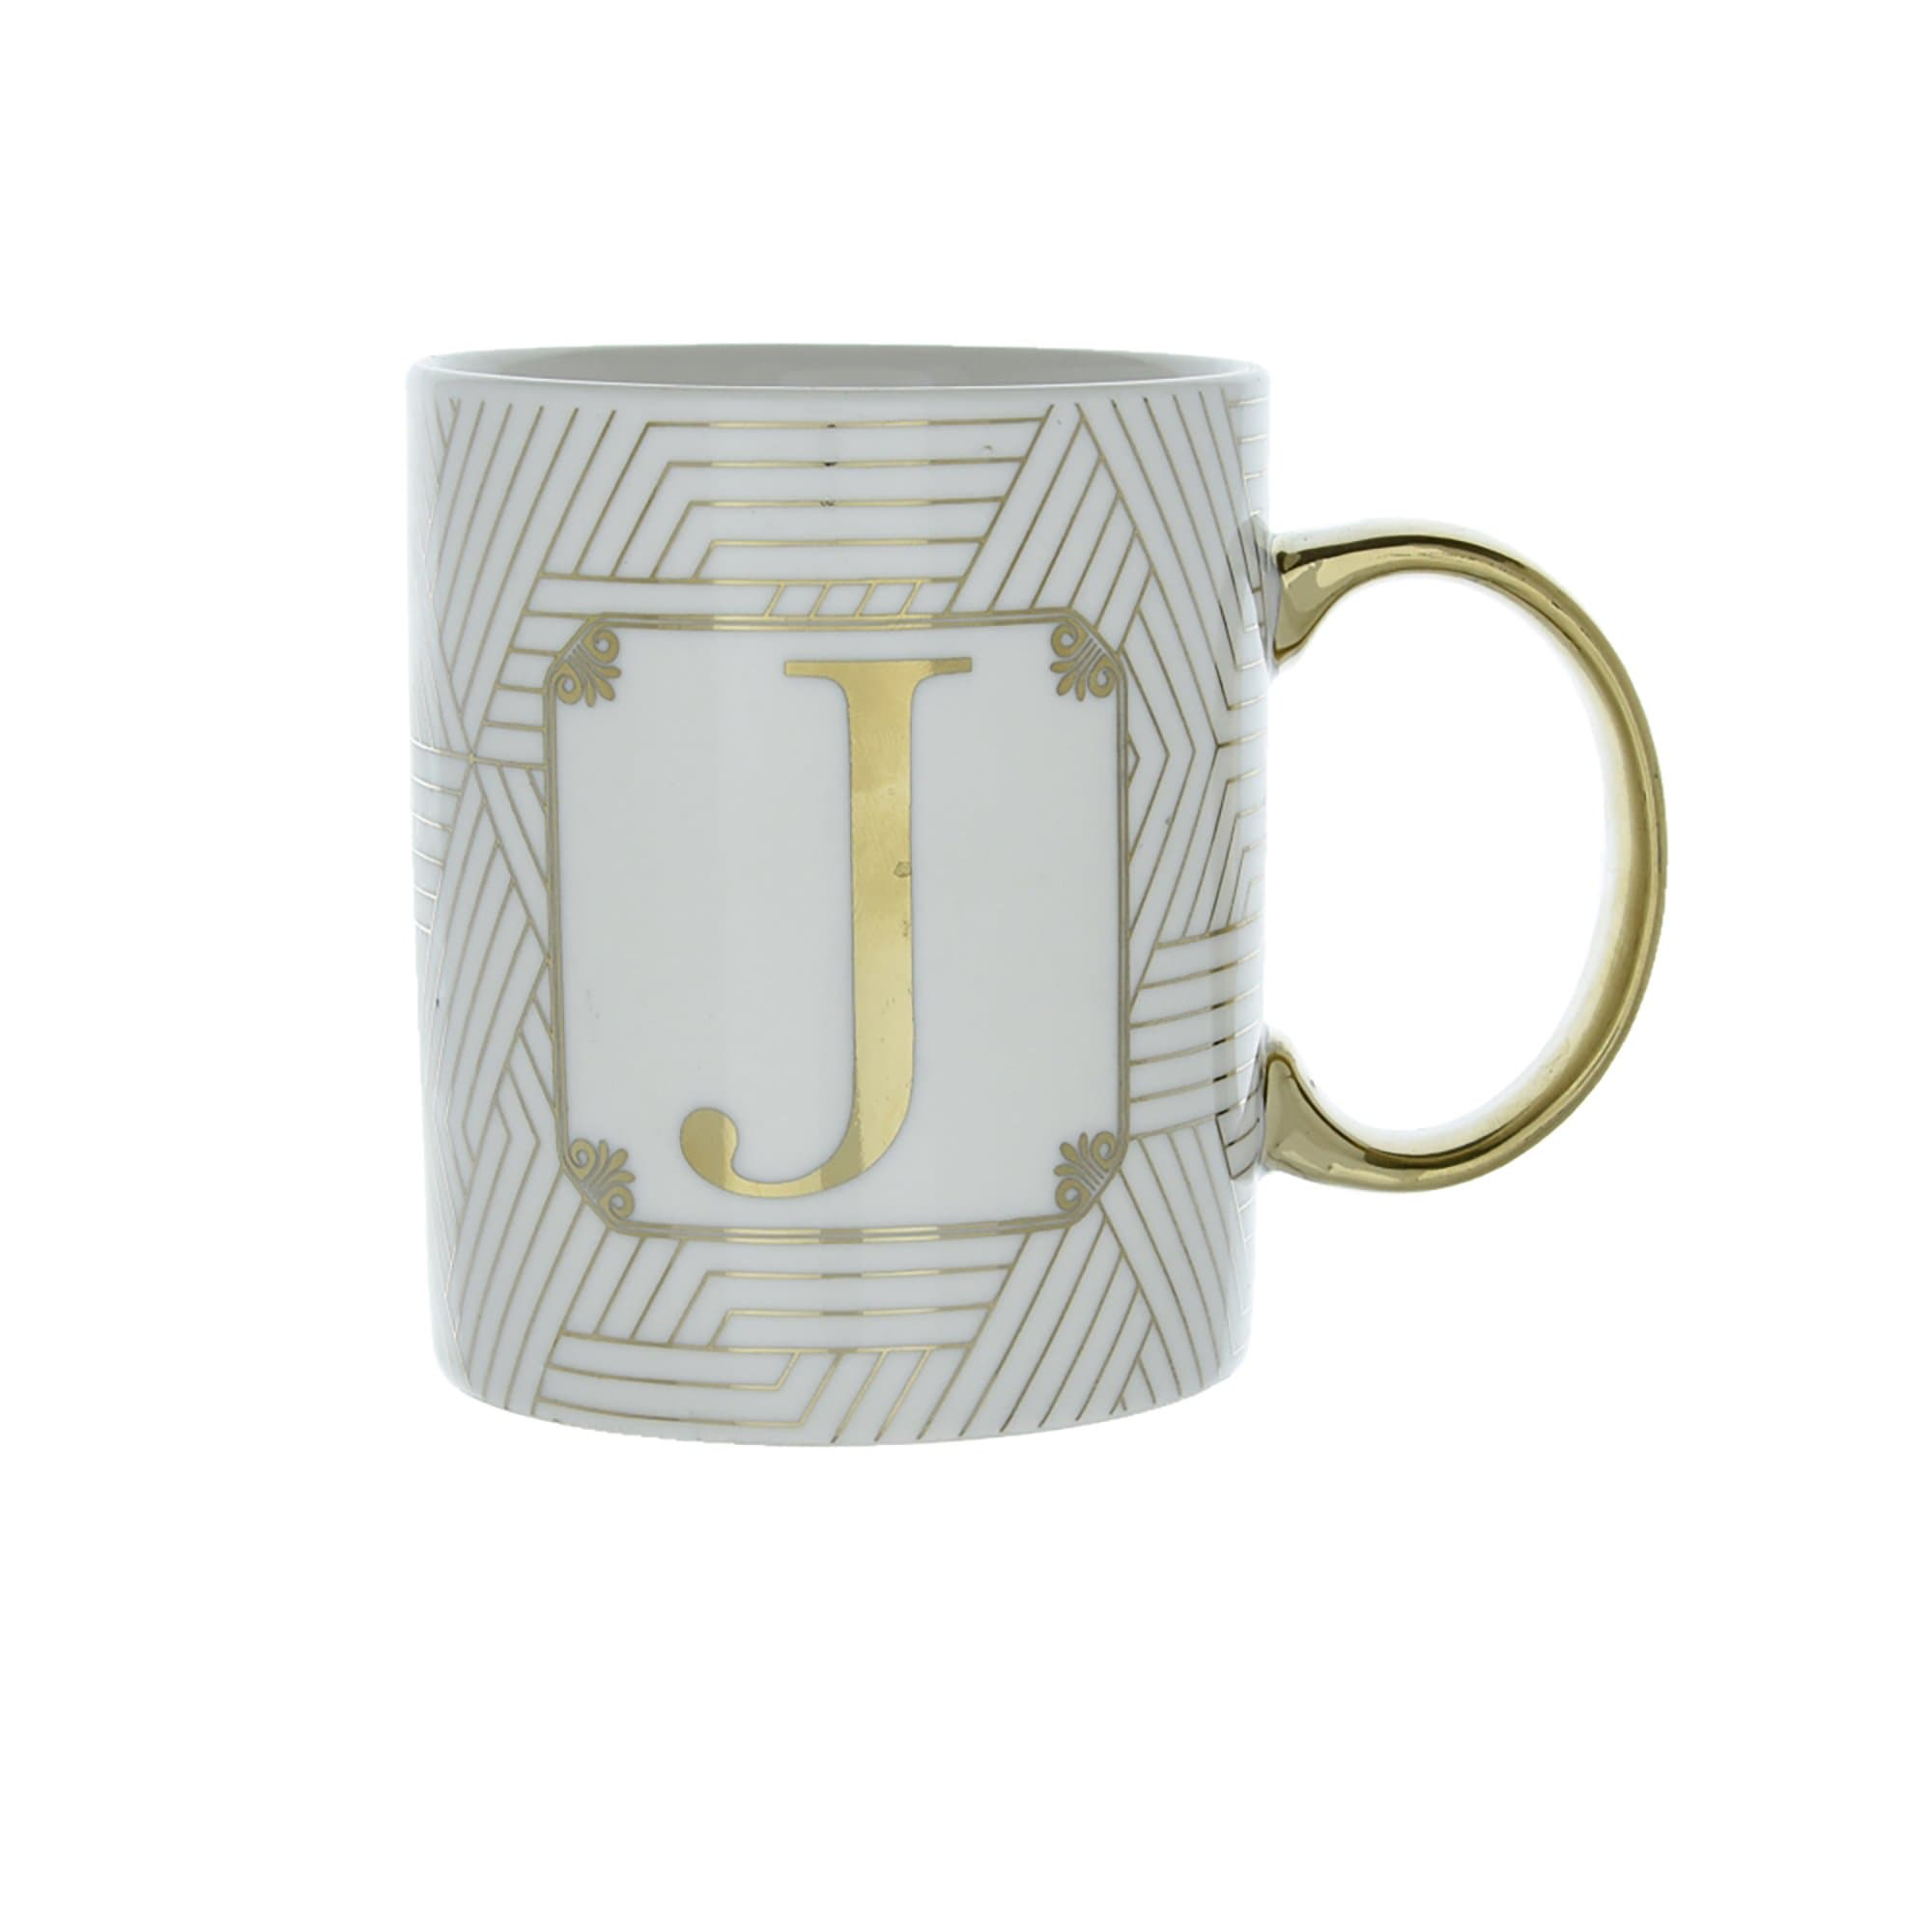 Candlelight Home Mugs Initial Straight Sided Mug J Gold 8cm 6PK